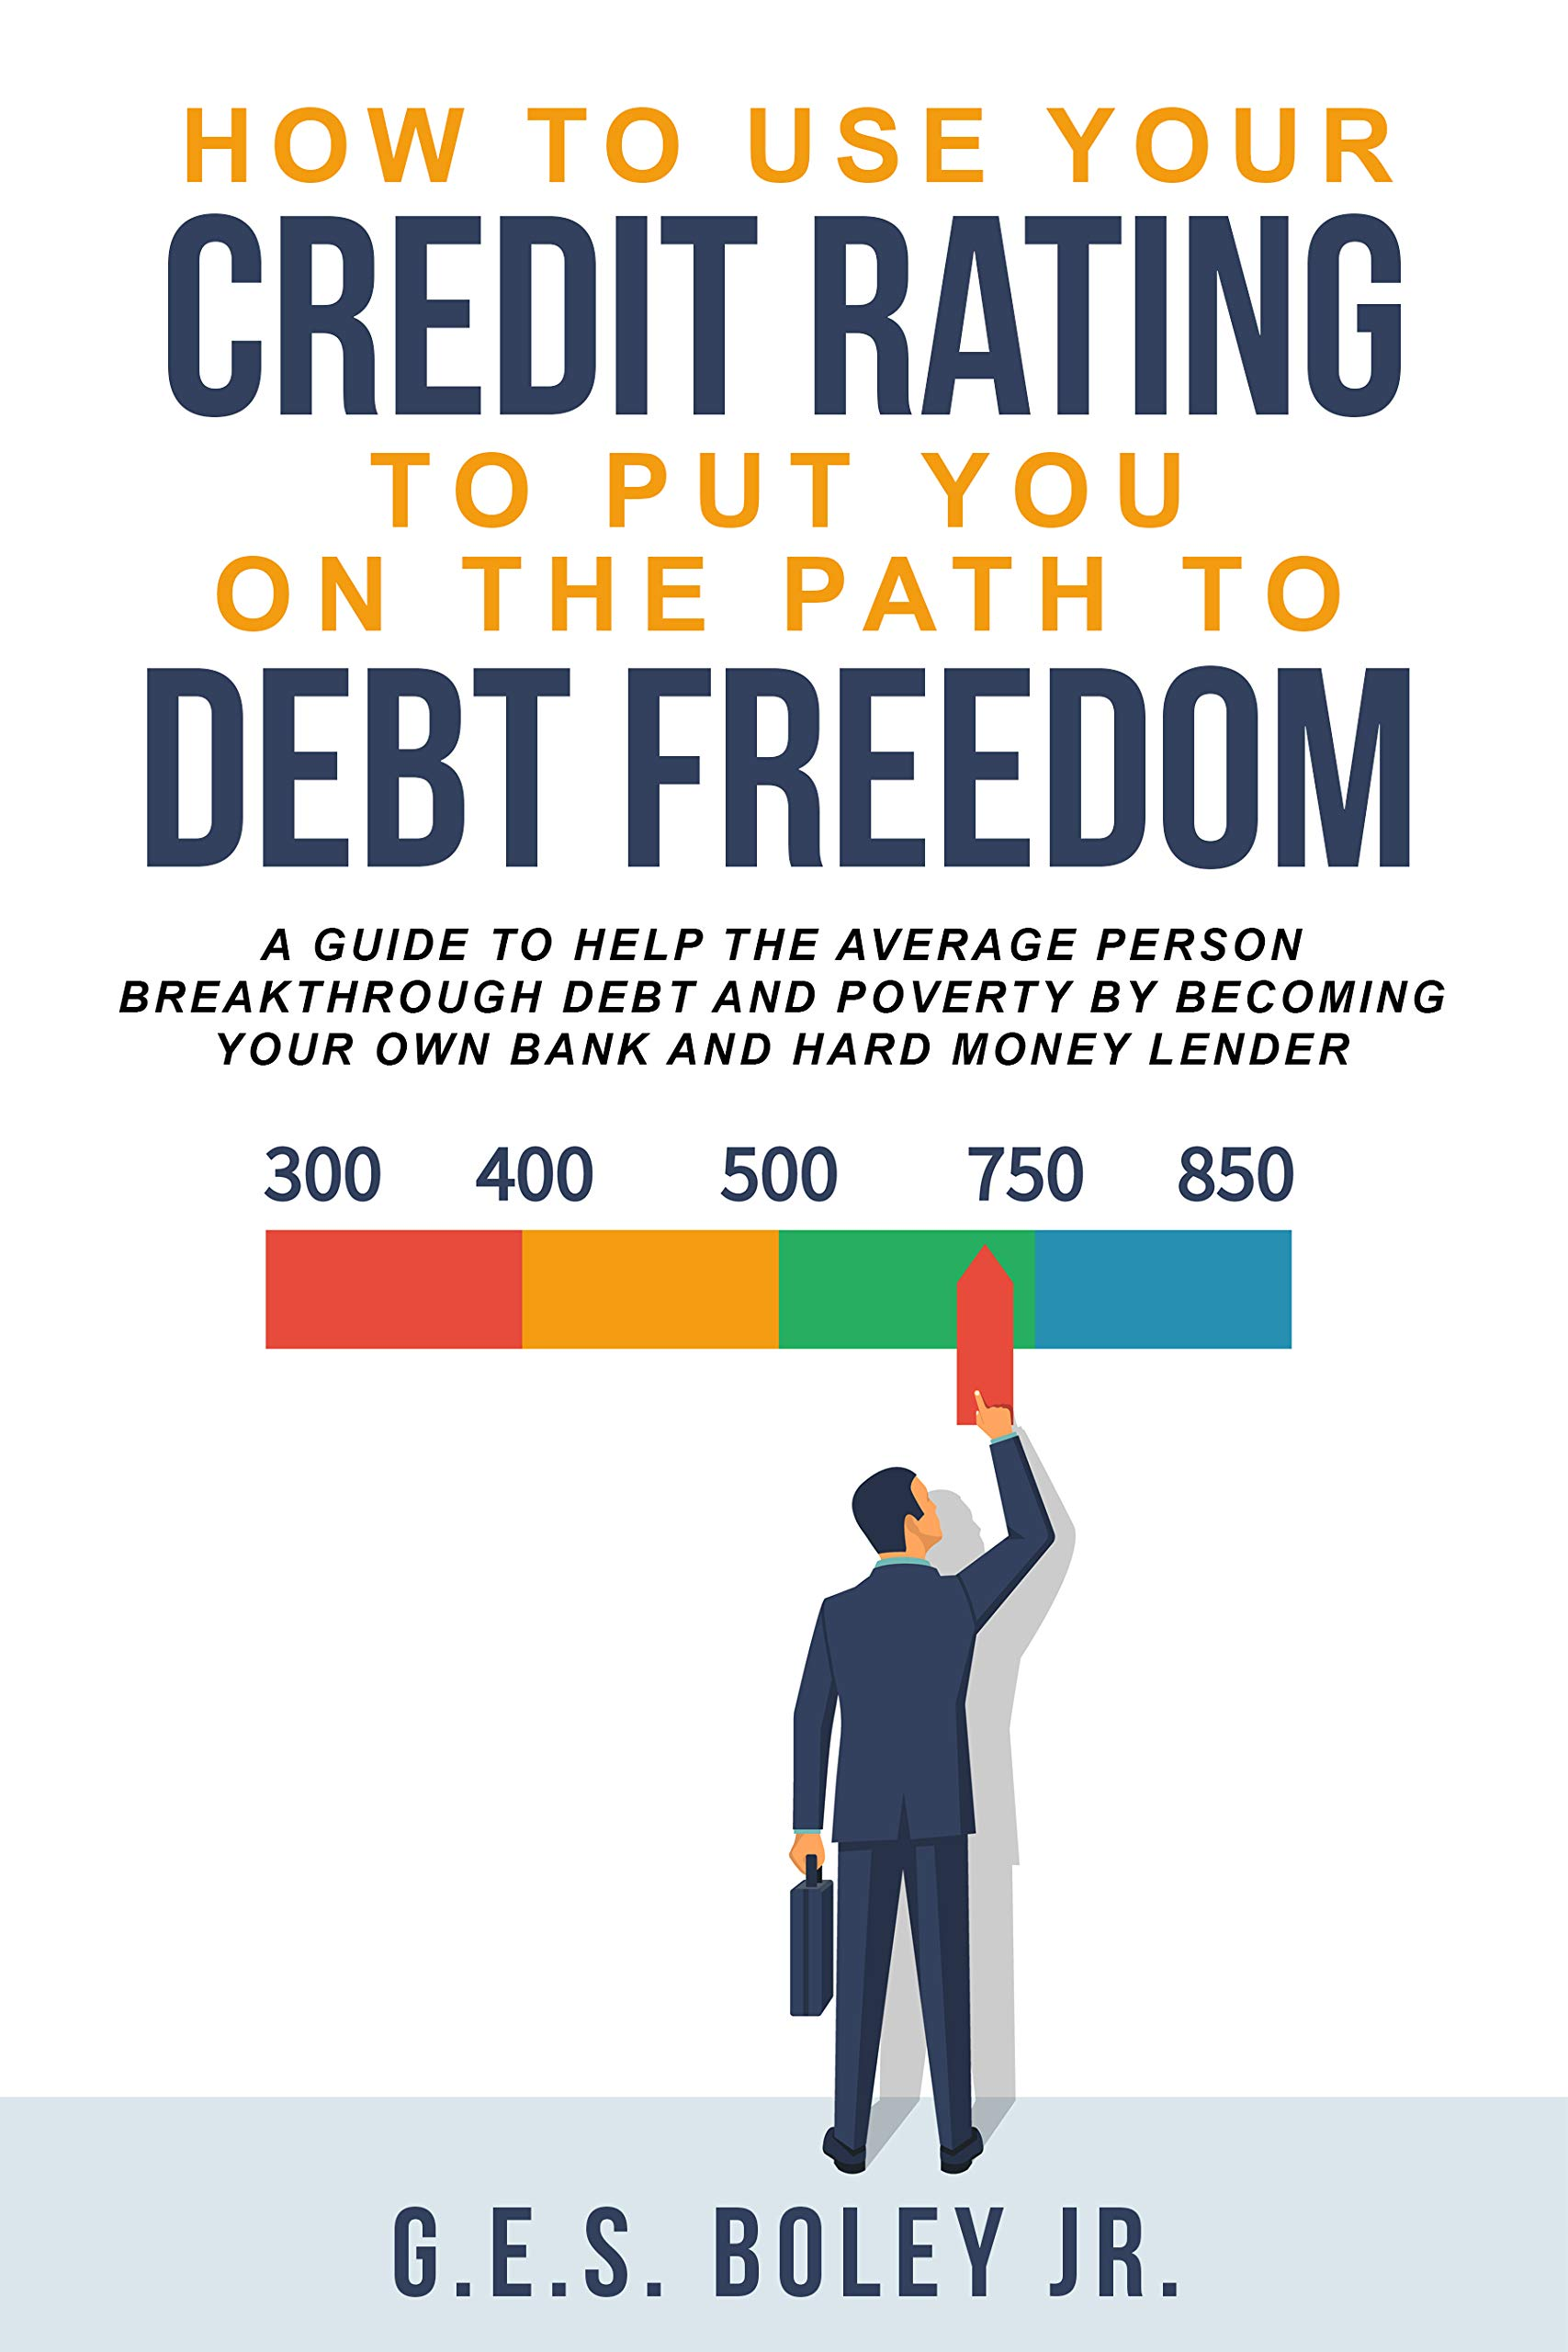 How To Use Your Credit Rating To Put You On The Path To Debt Freedom: A Guide to help the Average Person Breakthrough Debt and Poverty by becoming your own Bank and Hard Money Lender